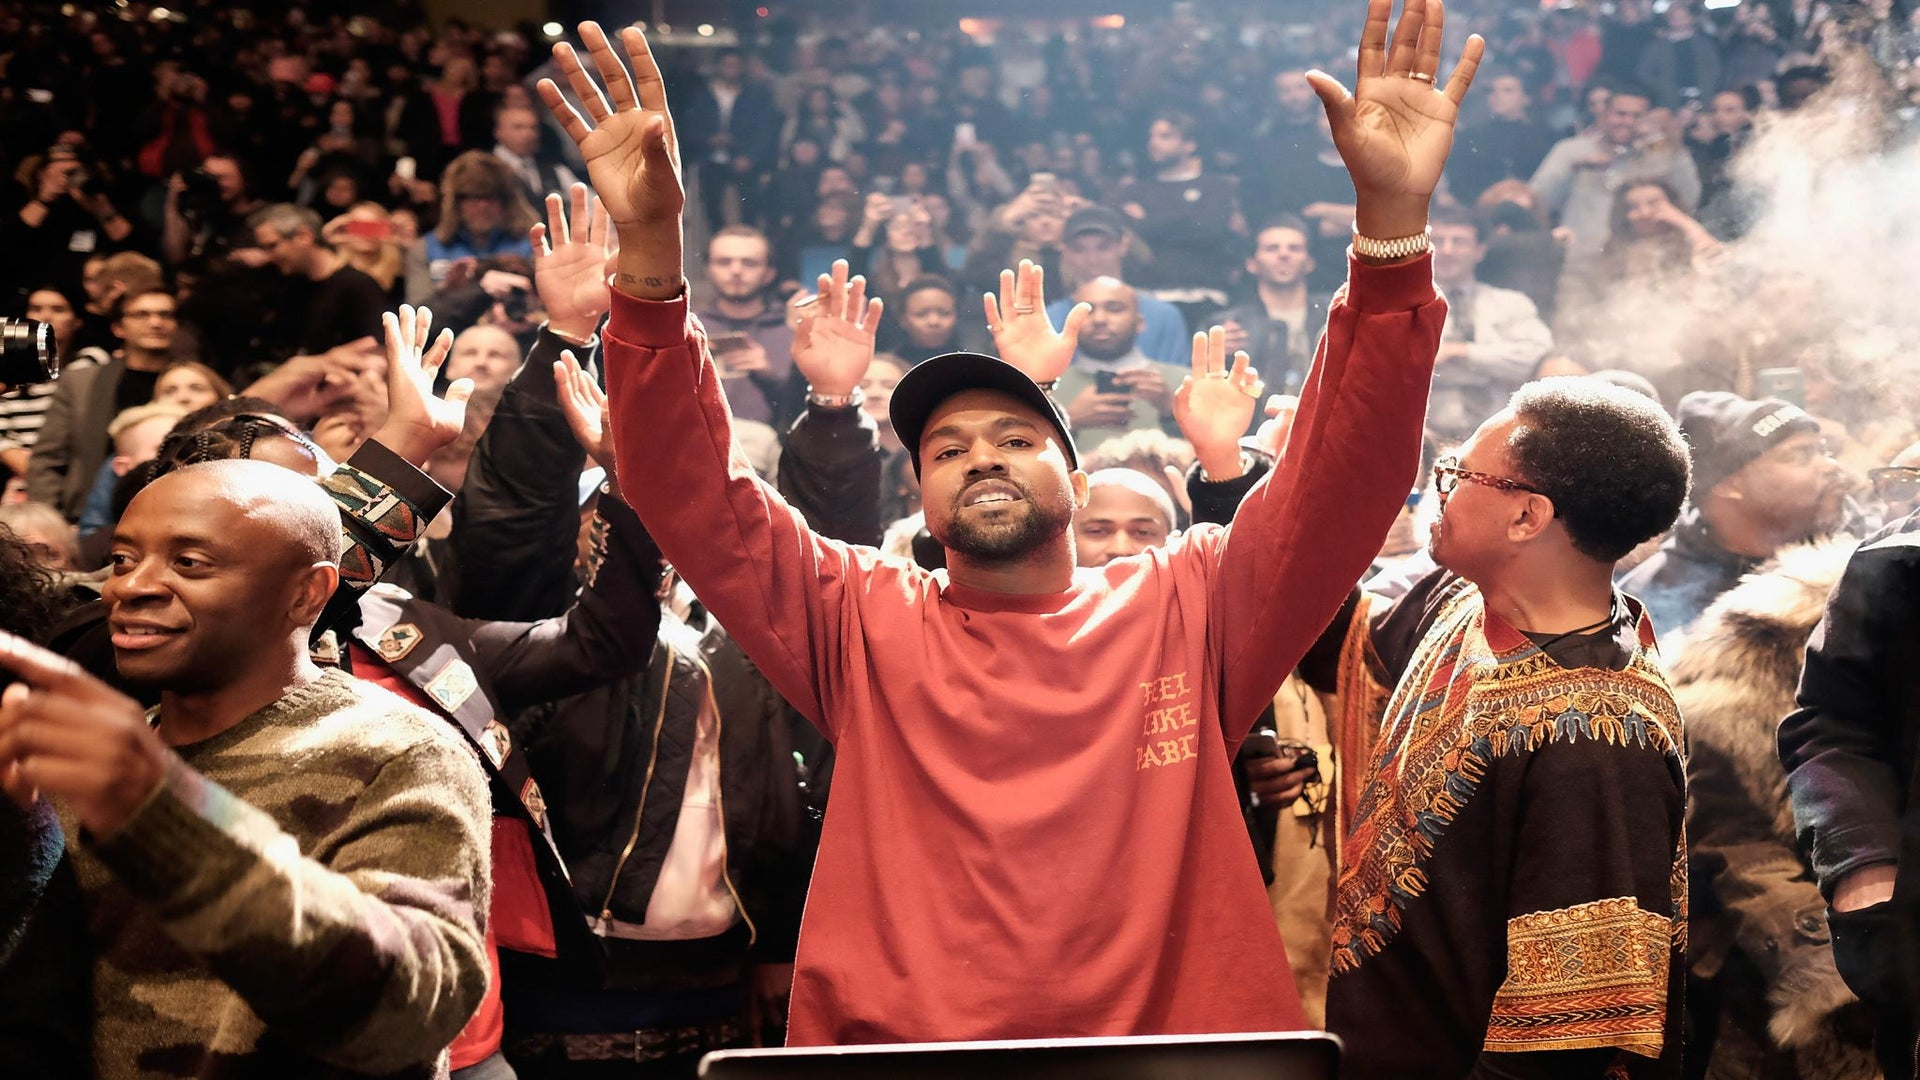 Kanye's 'The Life Of Pablo' Has Been Illegally Downloaded 500,000 Times